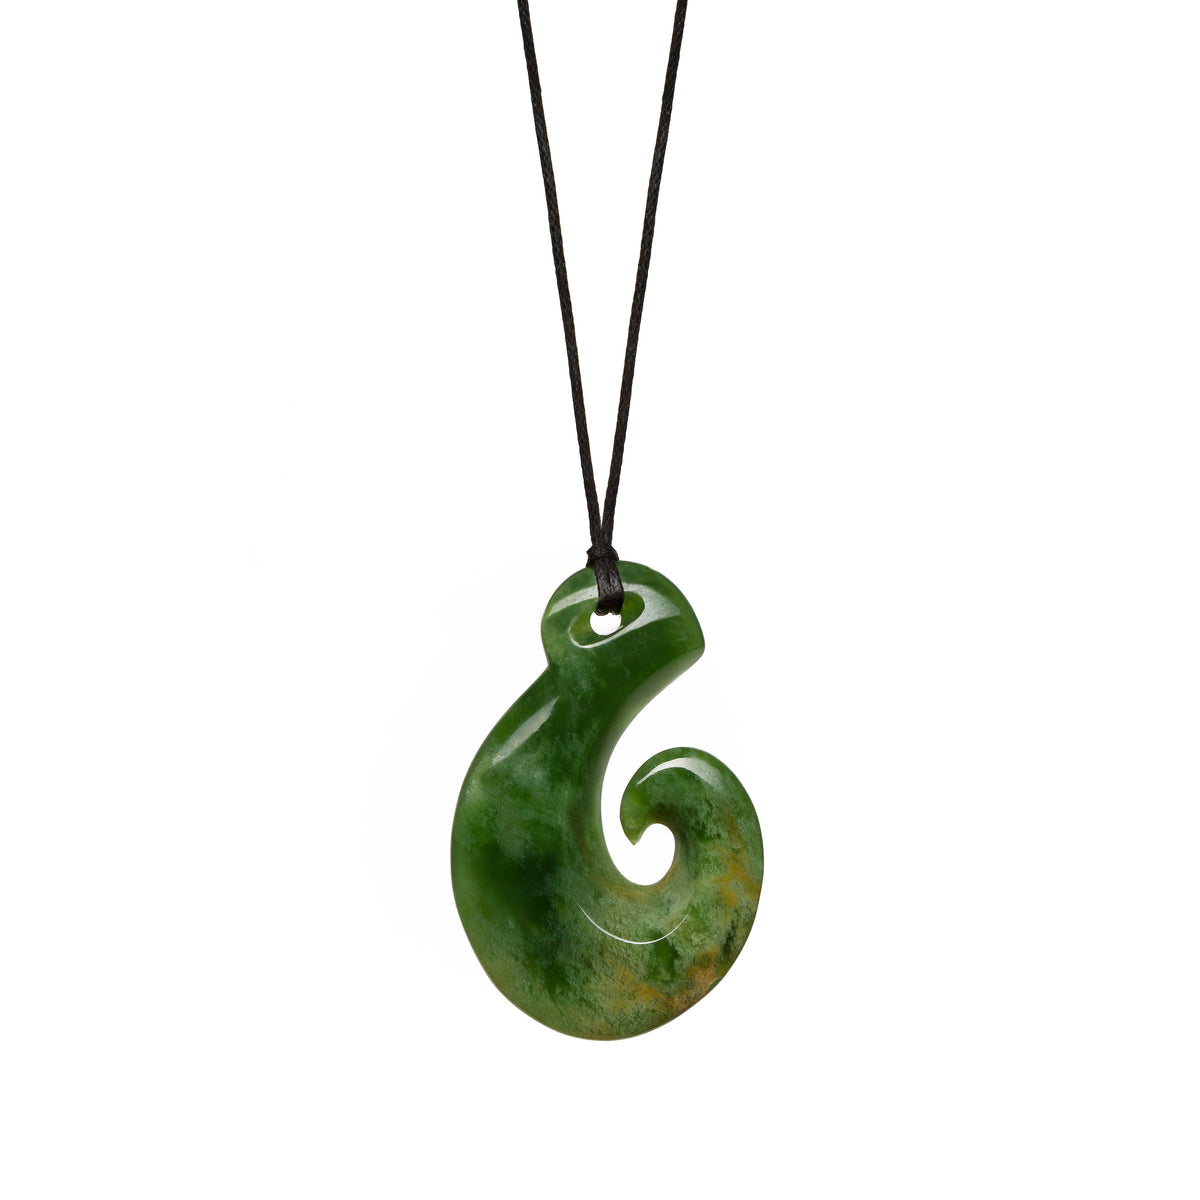 40mm x 26mm / New Zealand Pounamu // LU-H11-F-1